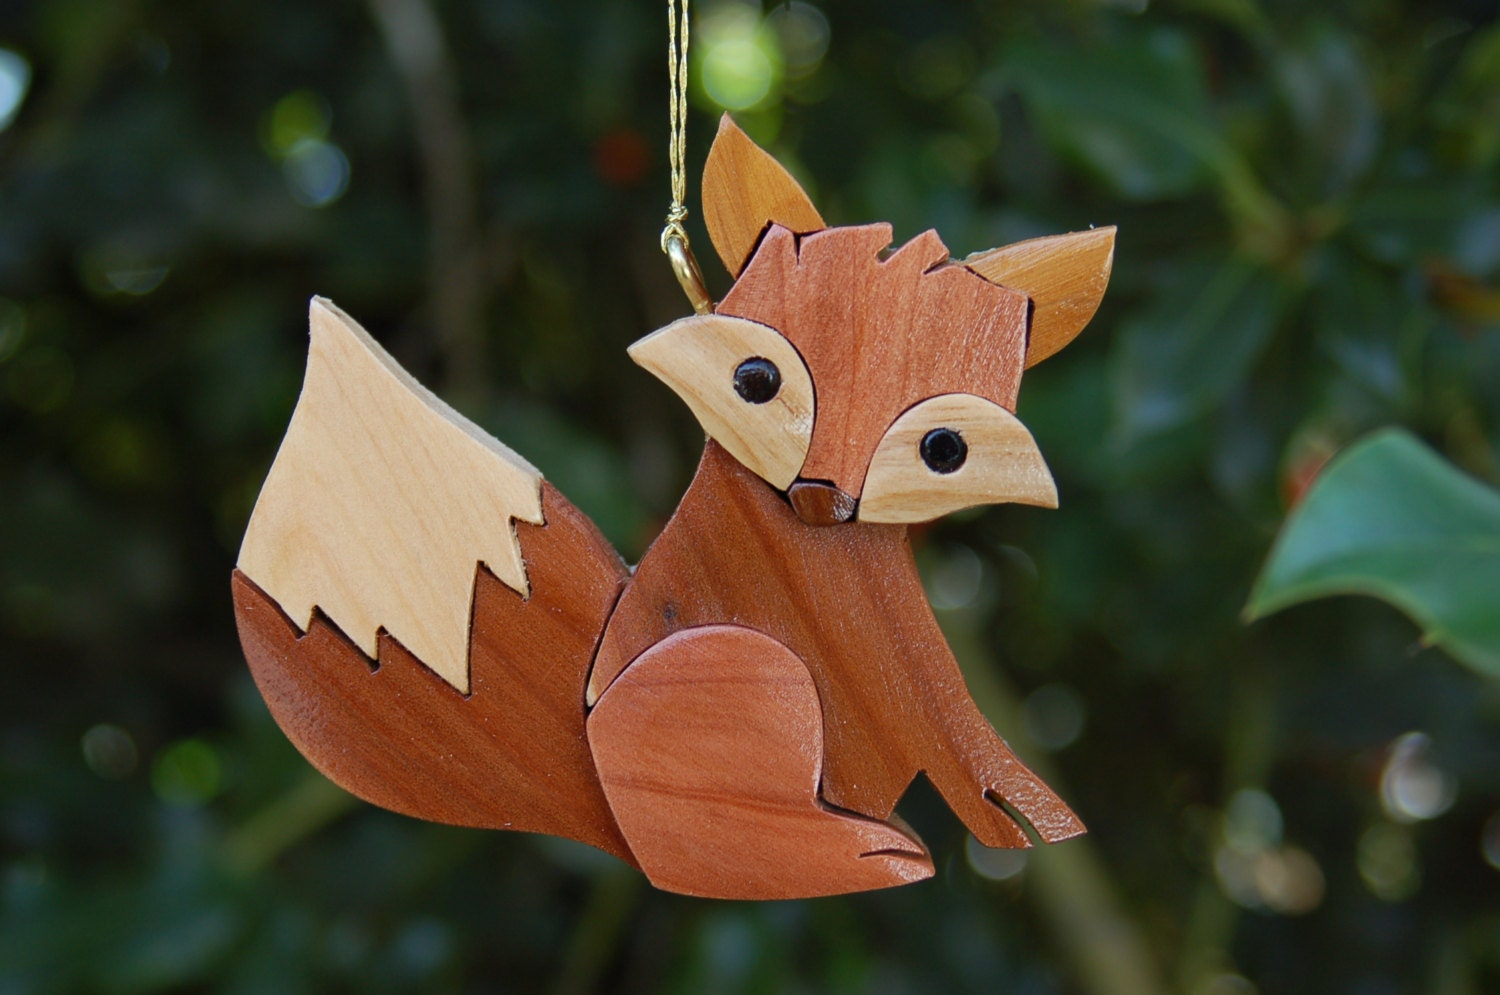 FOX CHRISTMAS ORNAMENT Intarsia Carving. A unique piece with